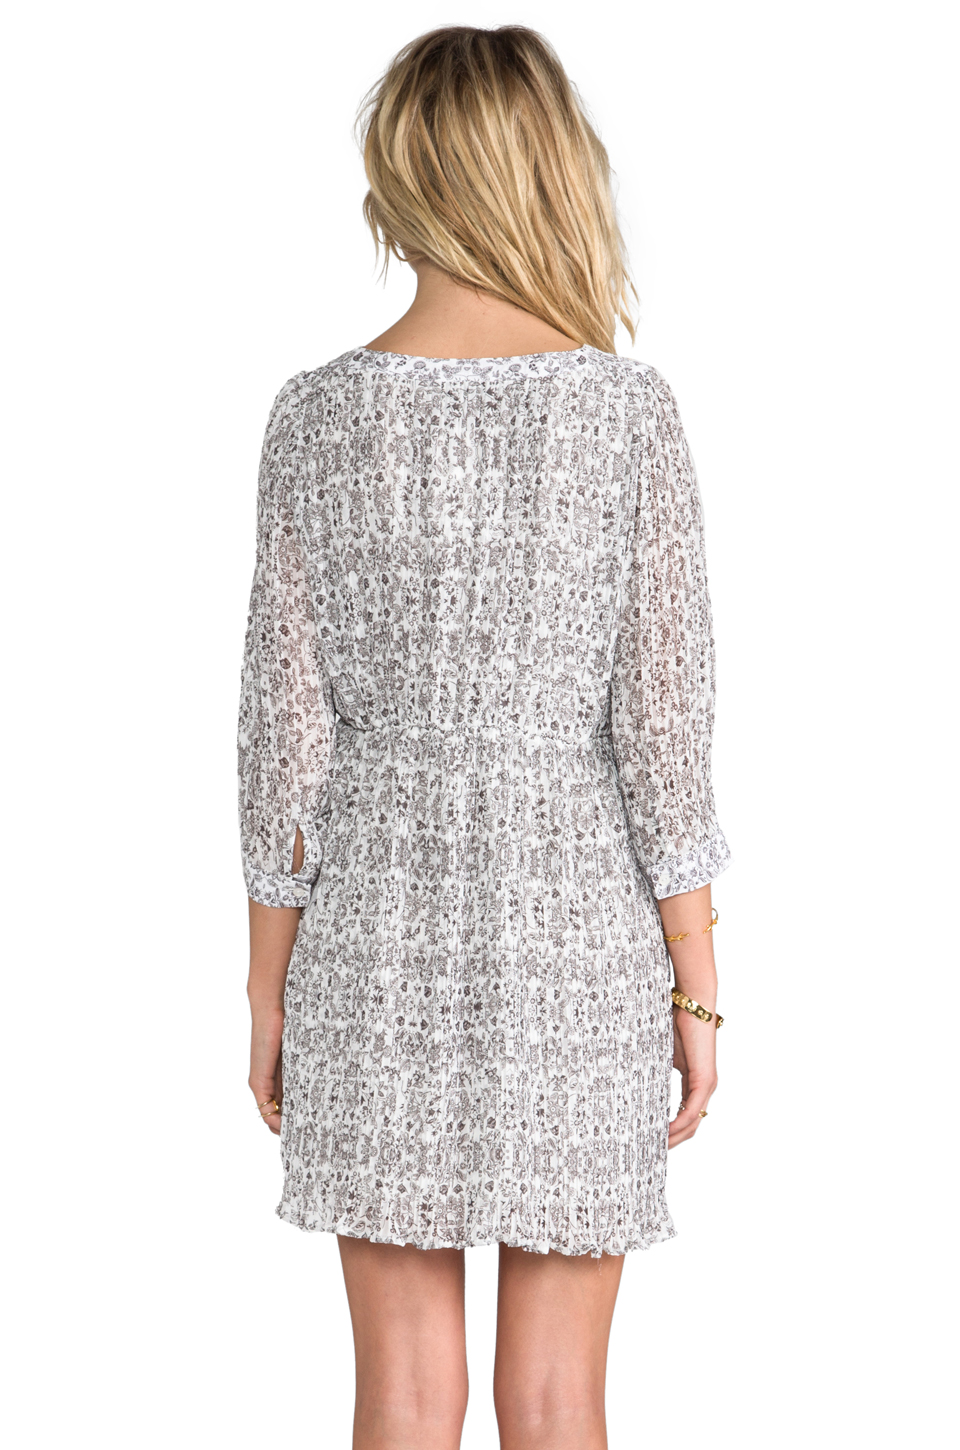 ANINE BING Floral Print Dress in Grey | REVOLVE